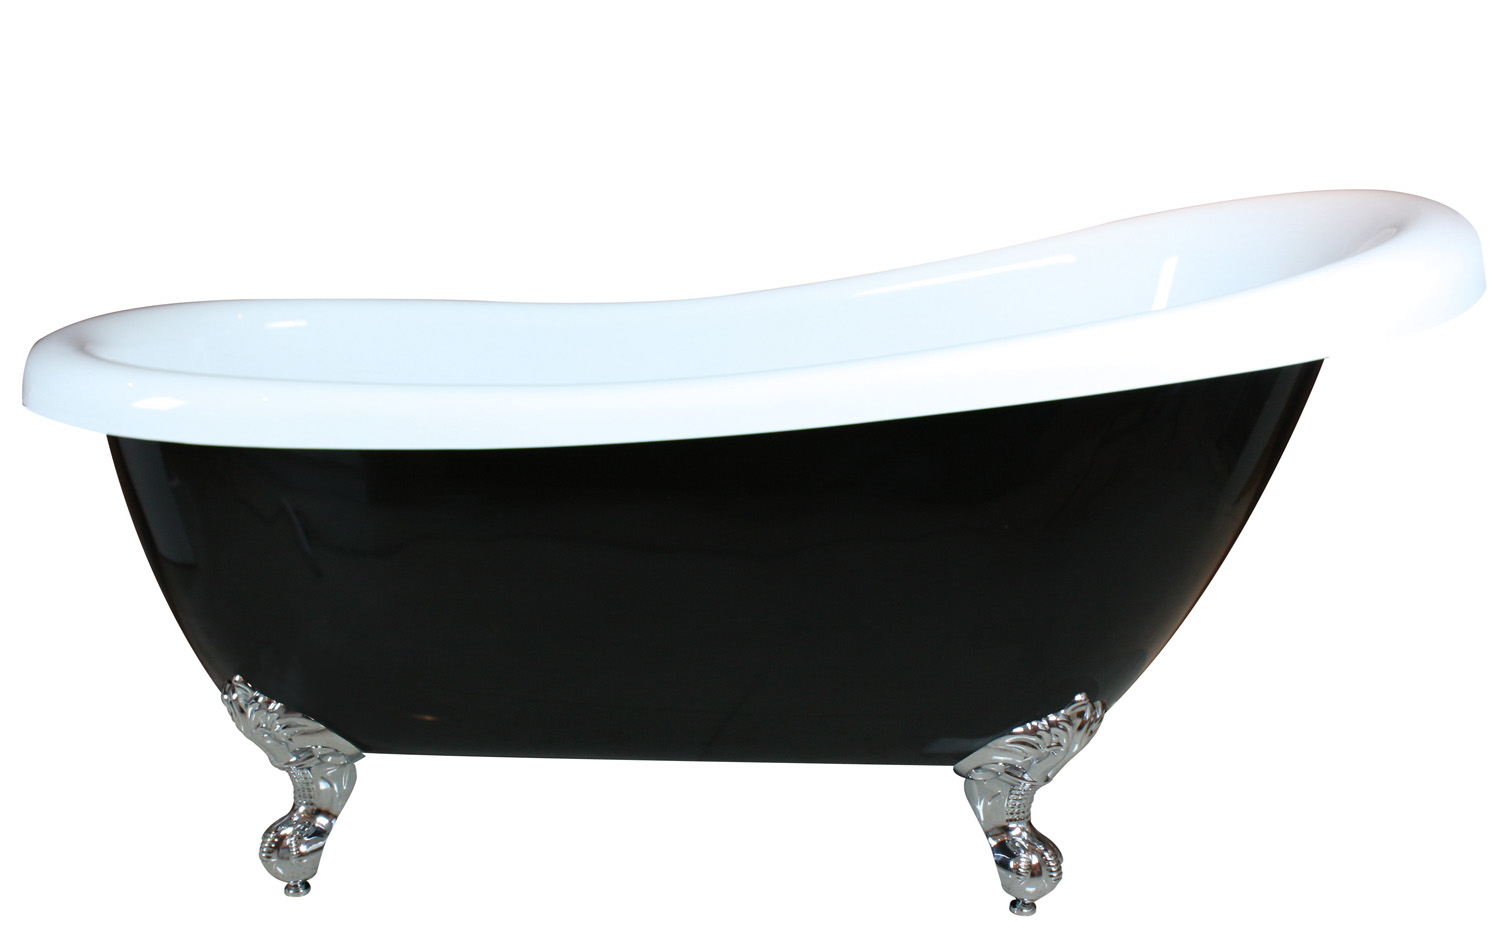 Lawson bath, claw-foot old world black and white bathtub